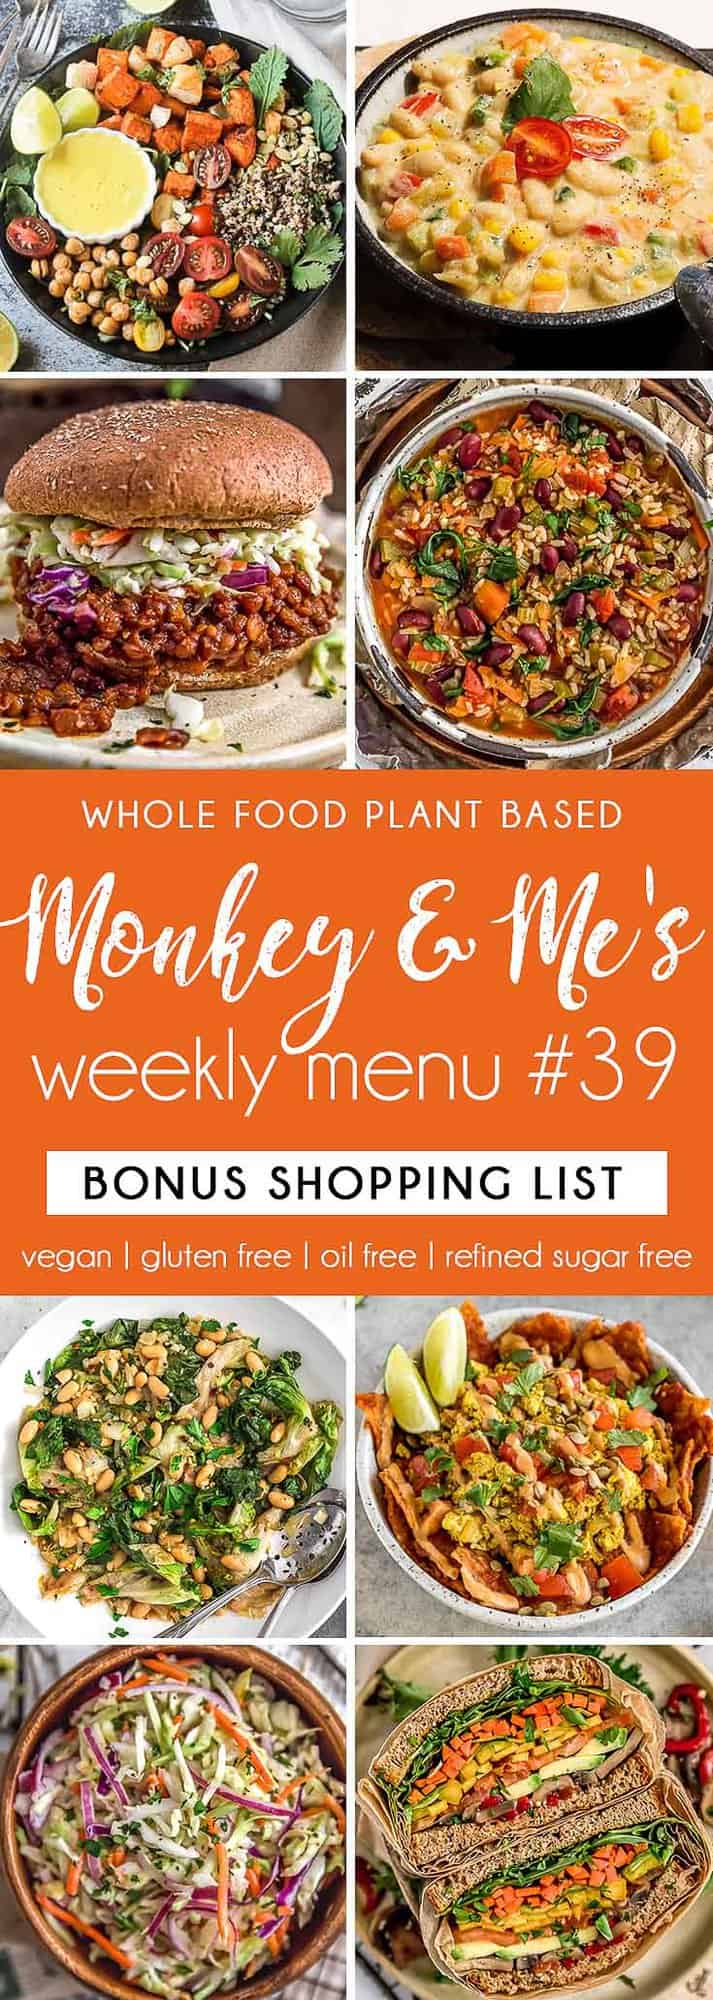 Monkey and Me's Menu 39 featuring 8 recipes